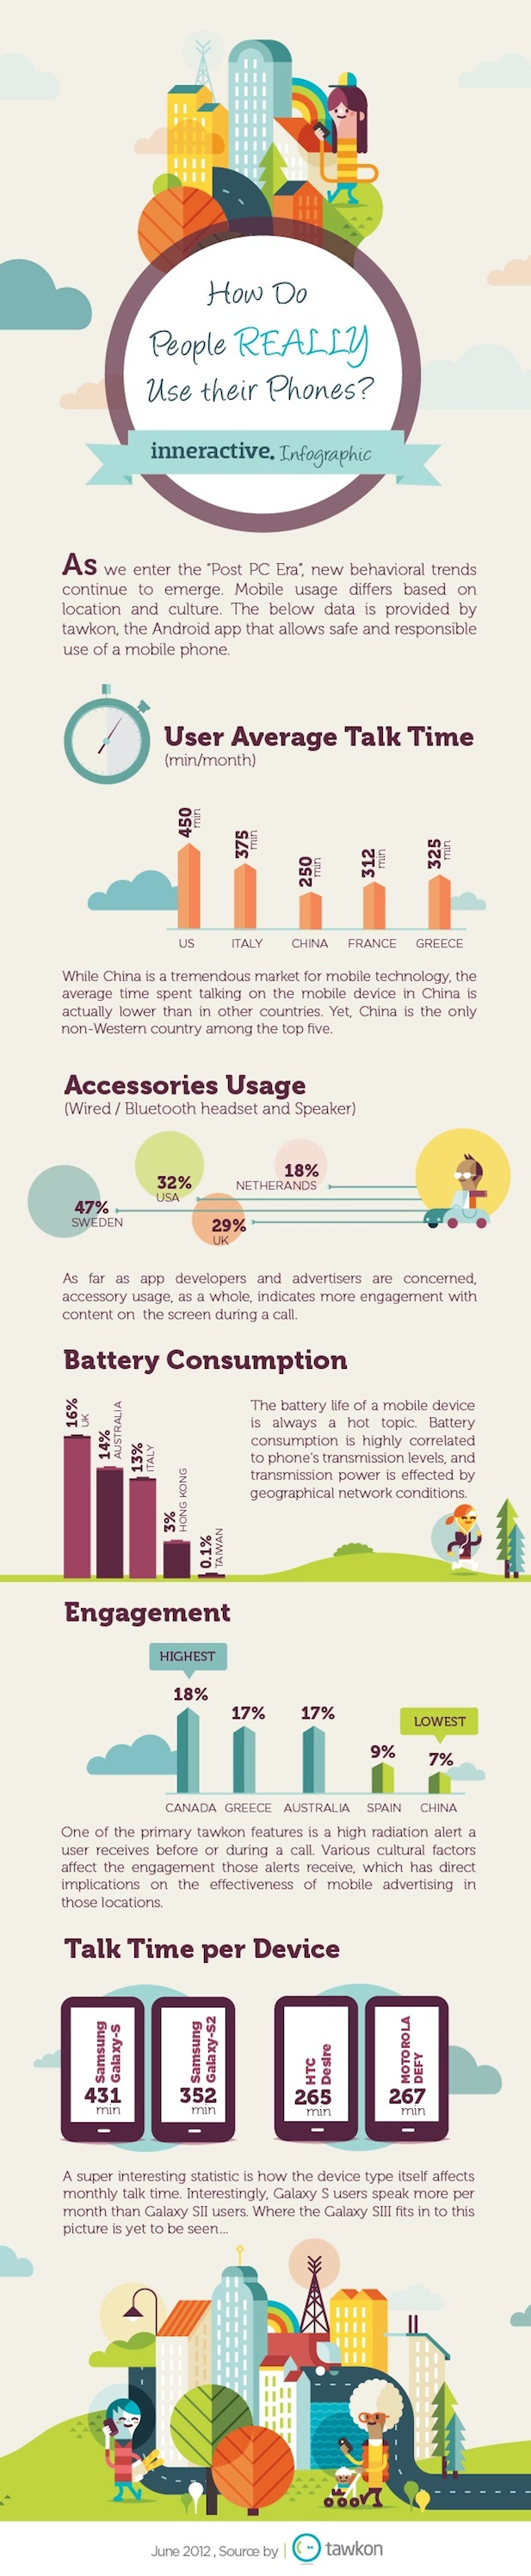 Android-Usage-Infographic